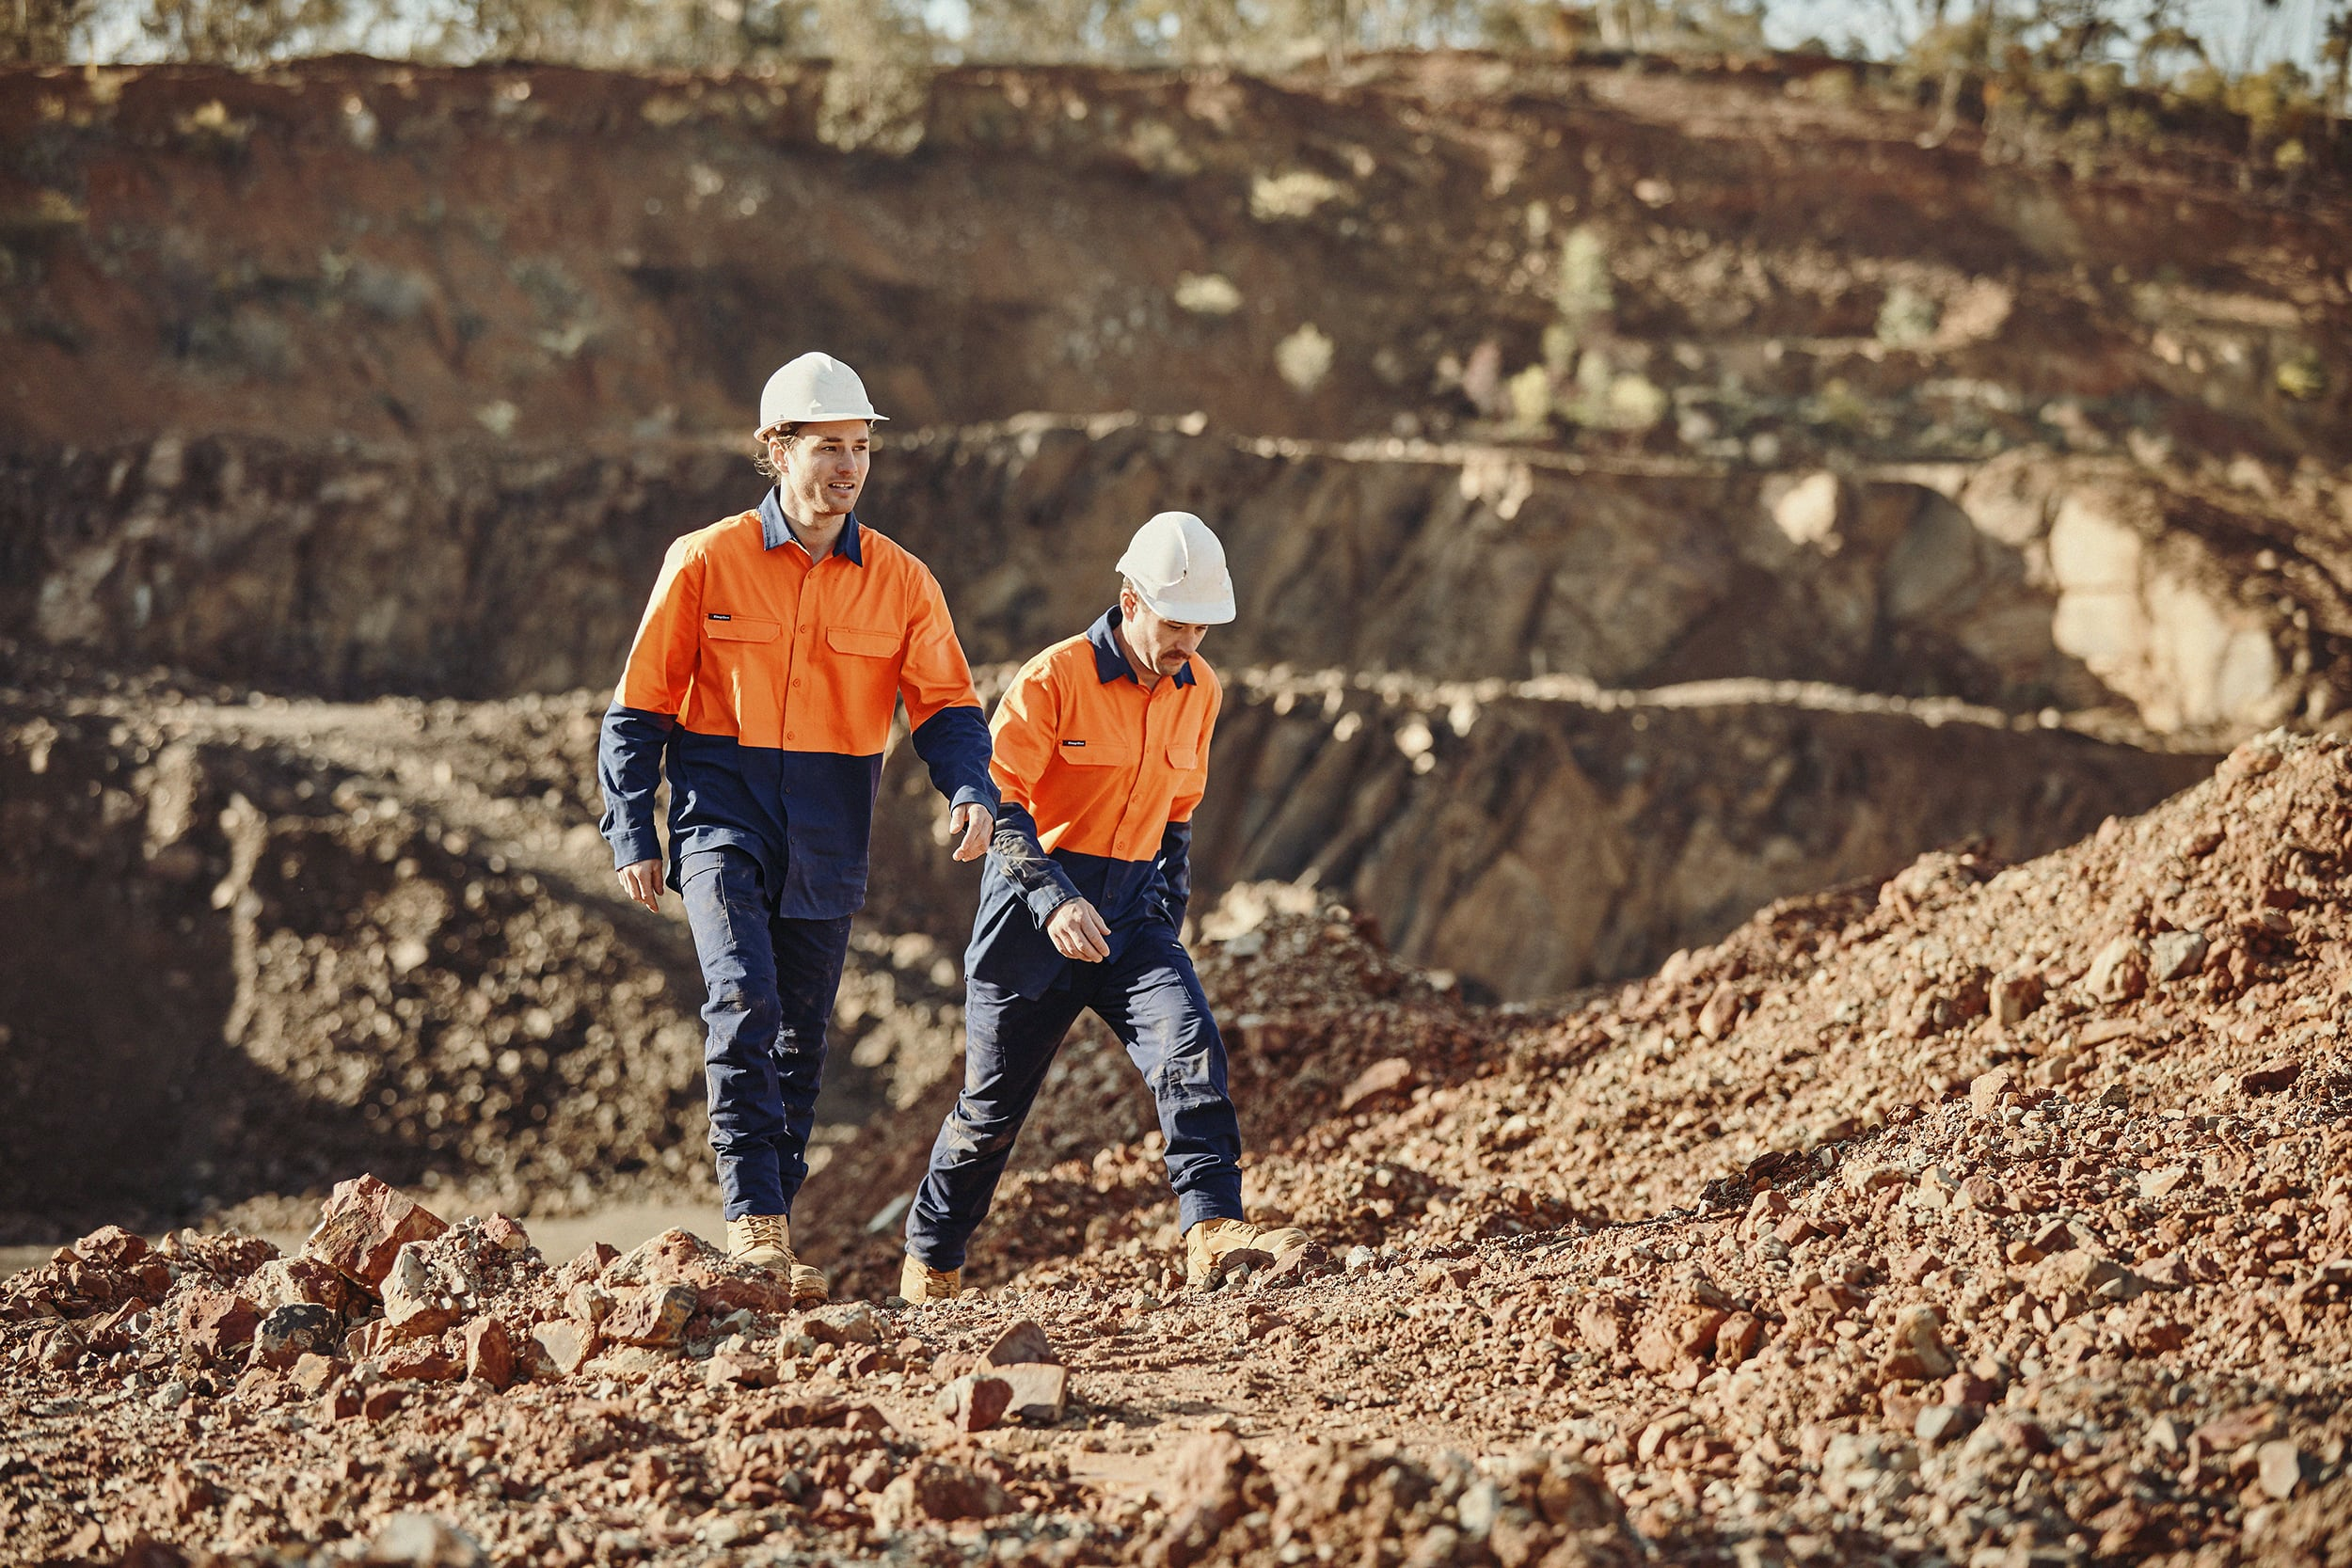 campaign-thom-rigney-professional-photographer-advertising-commissioned-workwear-construction-australia-007